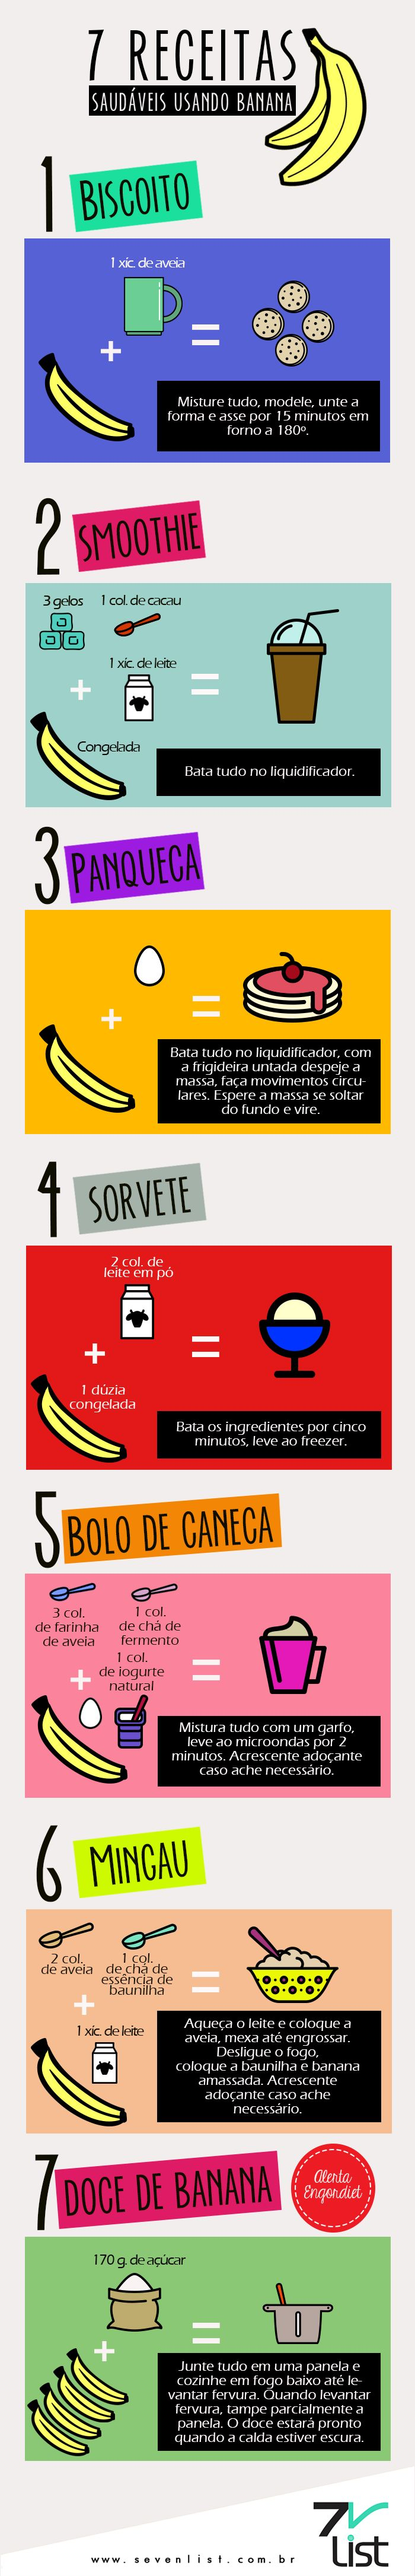 #Infográfico #Infographic #Design #lifestyle #Banana #Receita #Recipe #Fit…